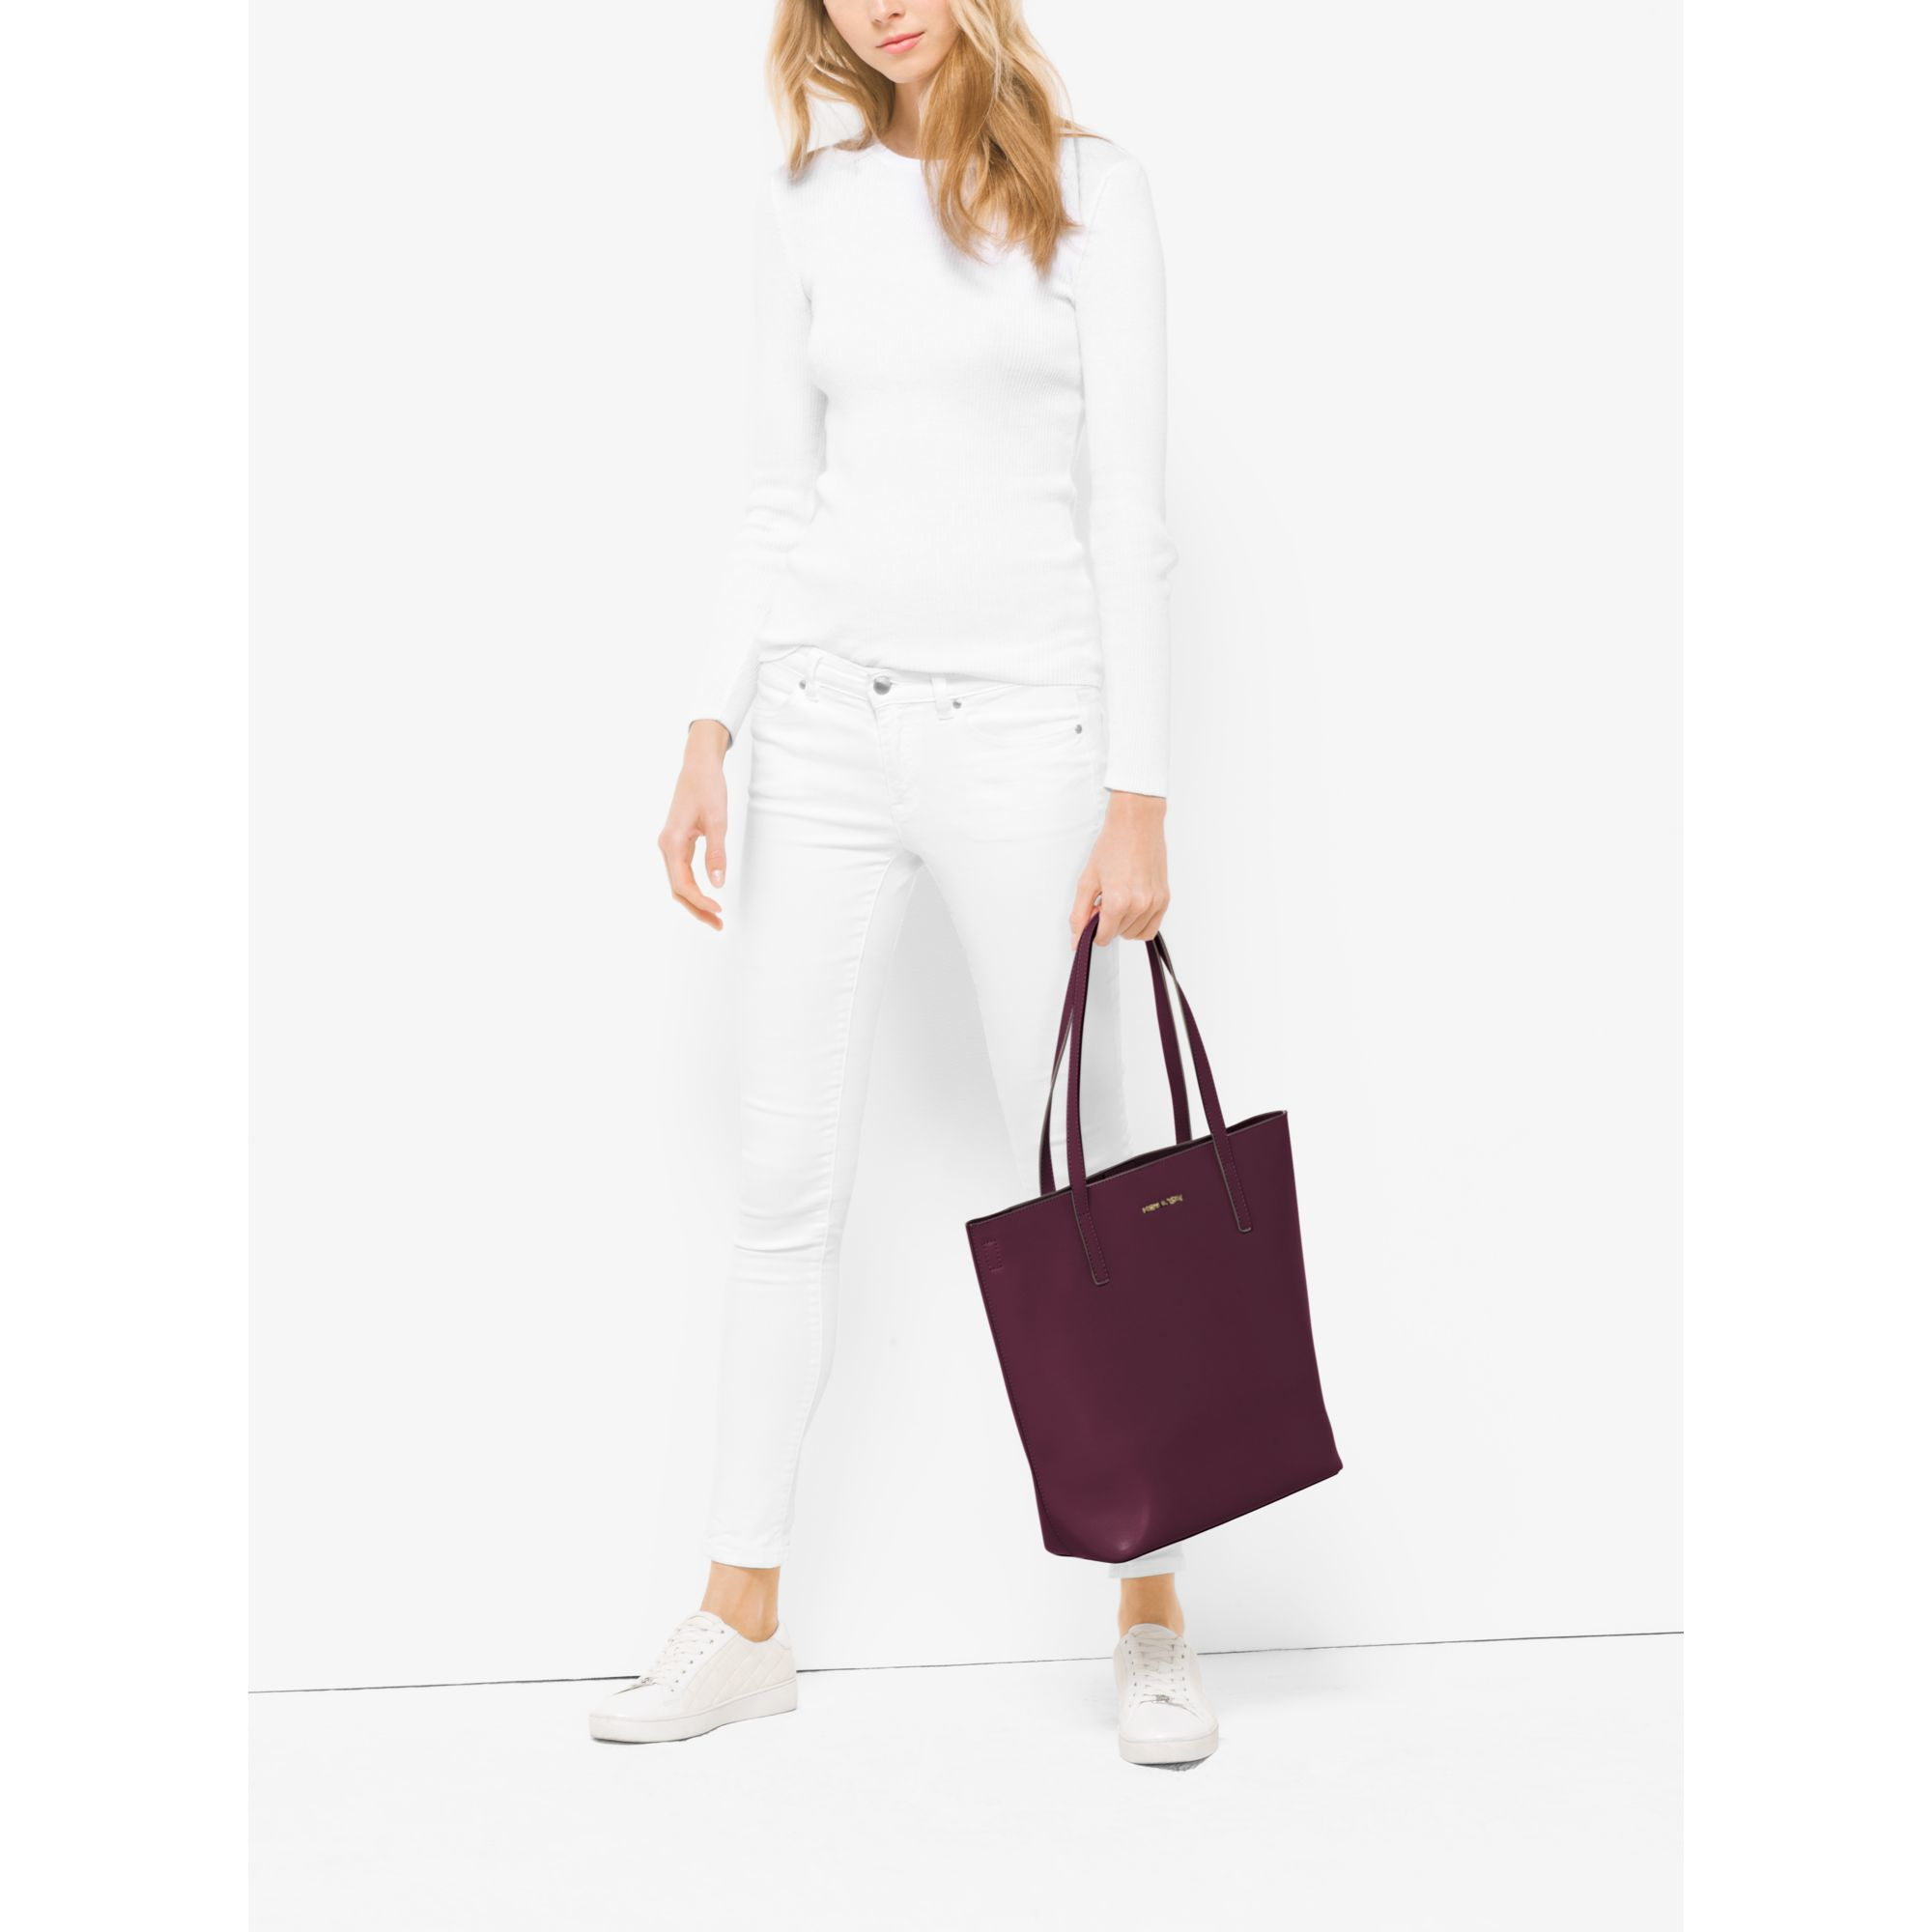 b3deae730a96 Michael Kors Emry Large Leather Tote in Purple - Lyst